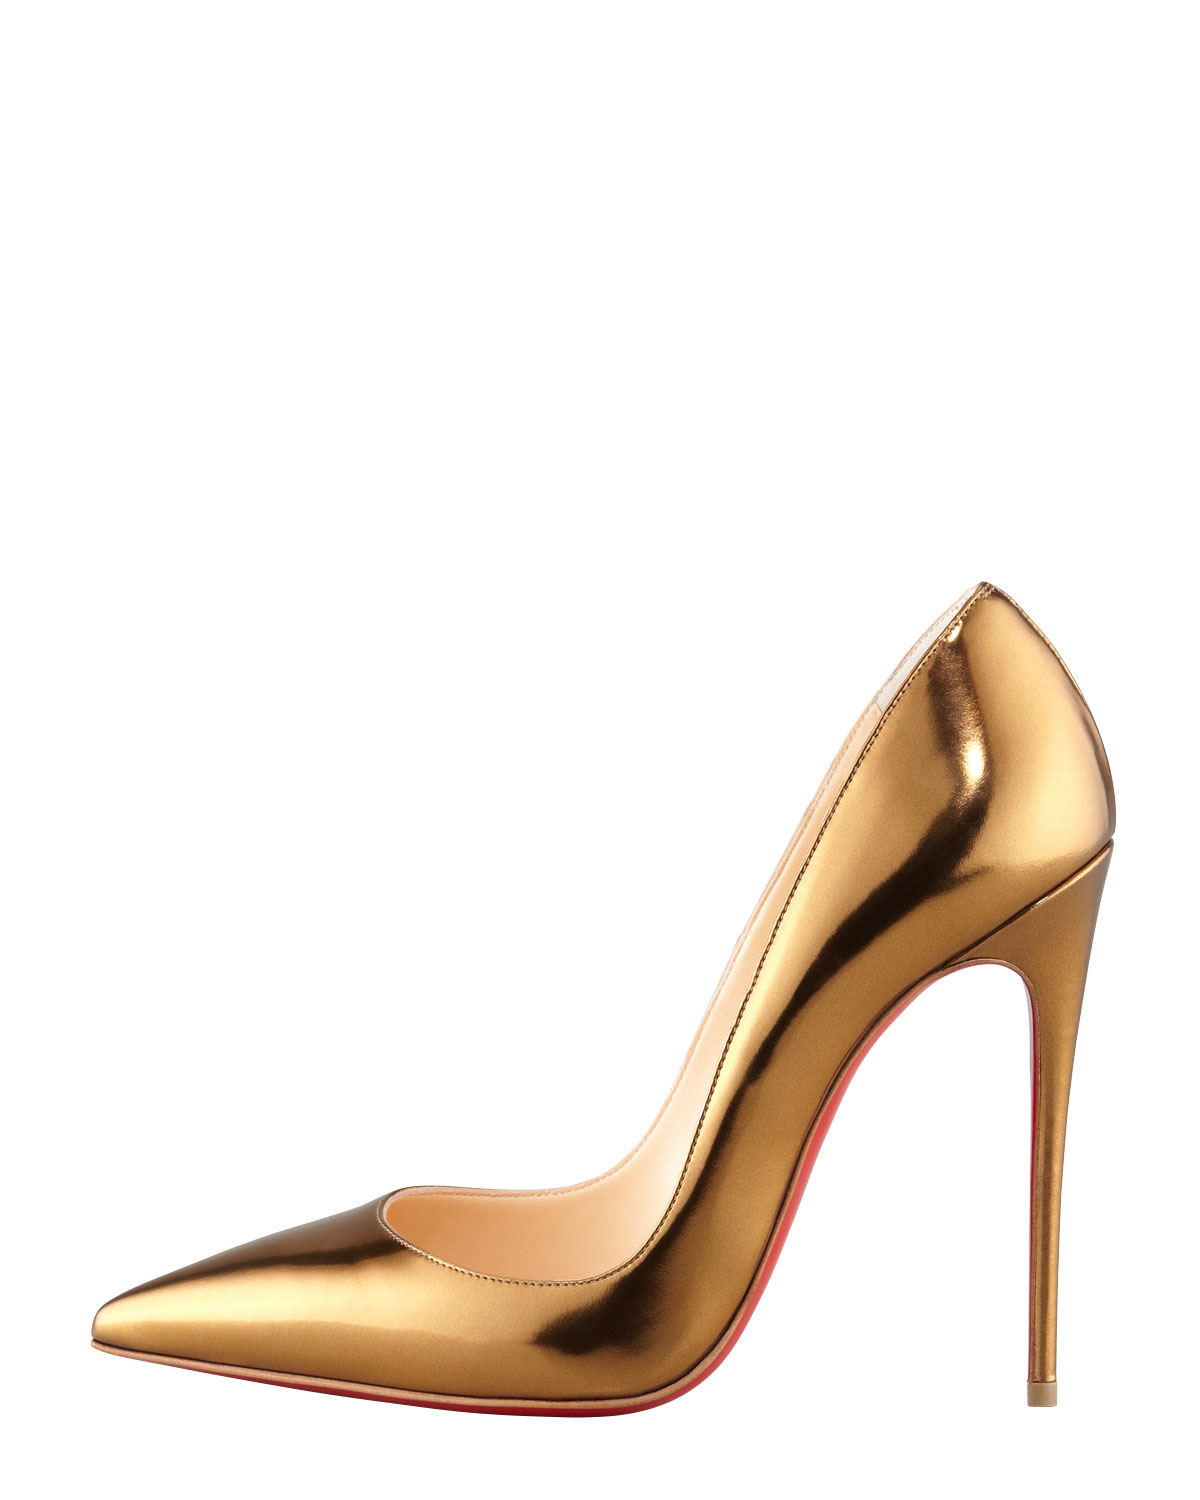 new styles 700f1 f452a Christian Louboutin Metallic So Kate Mirrored Leather Red Sole Pump Bronze